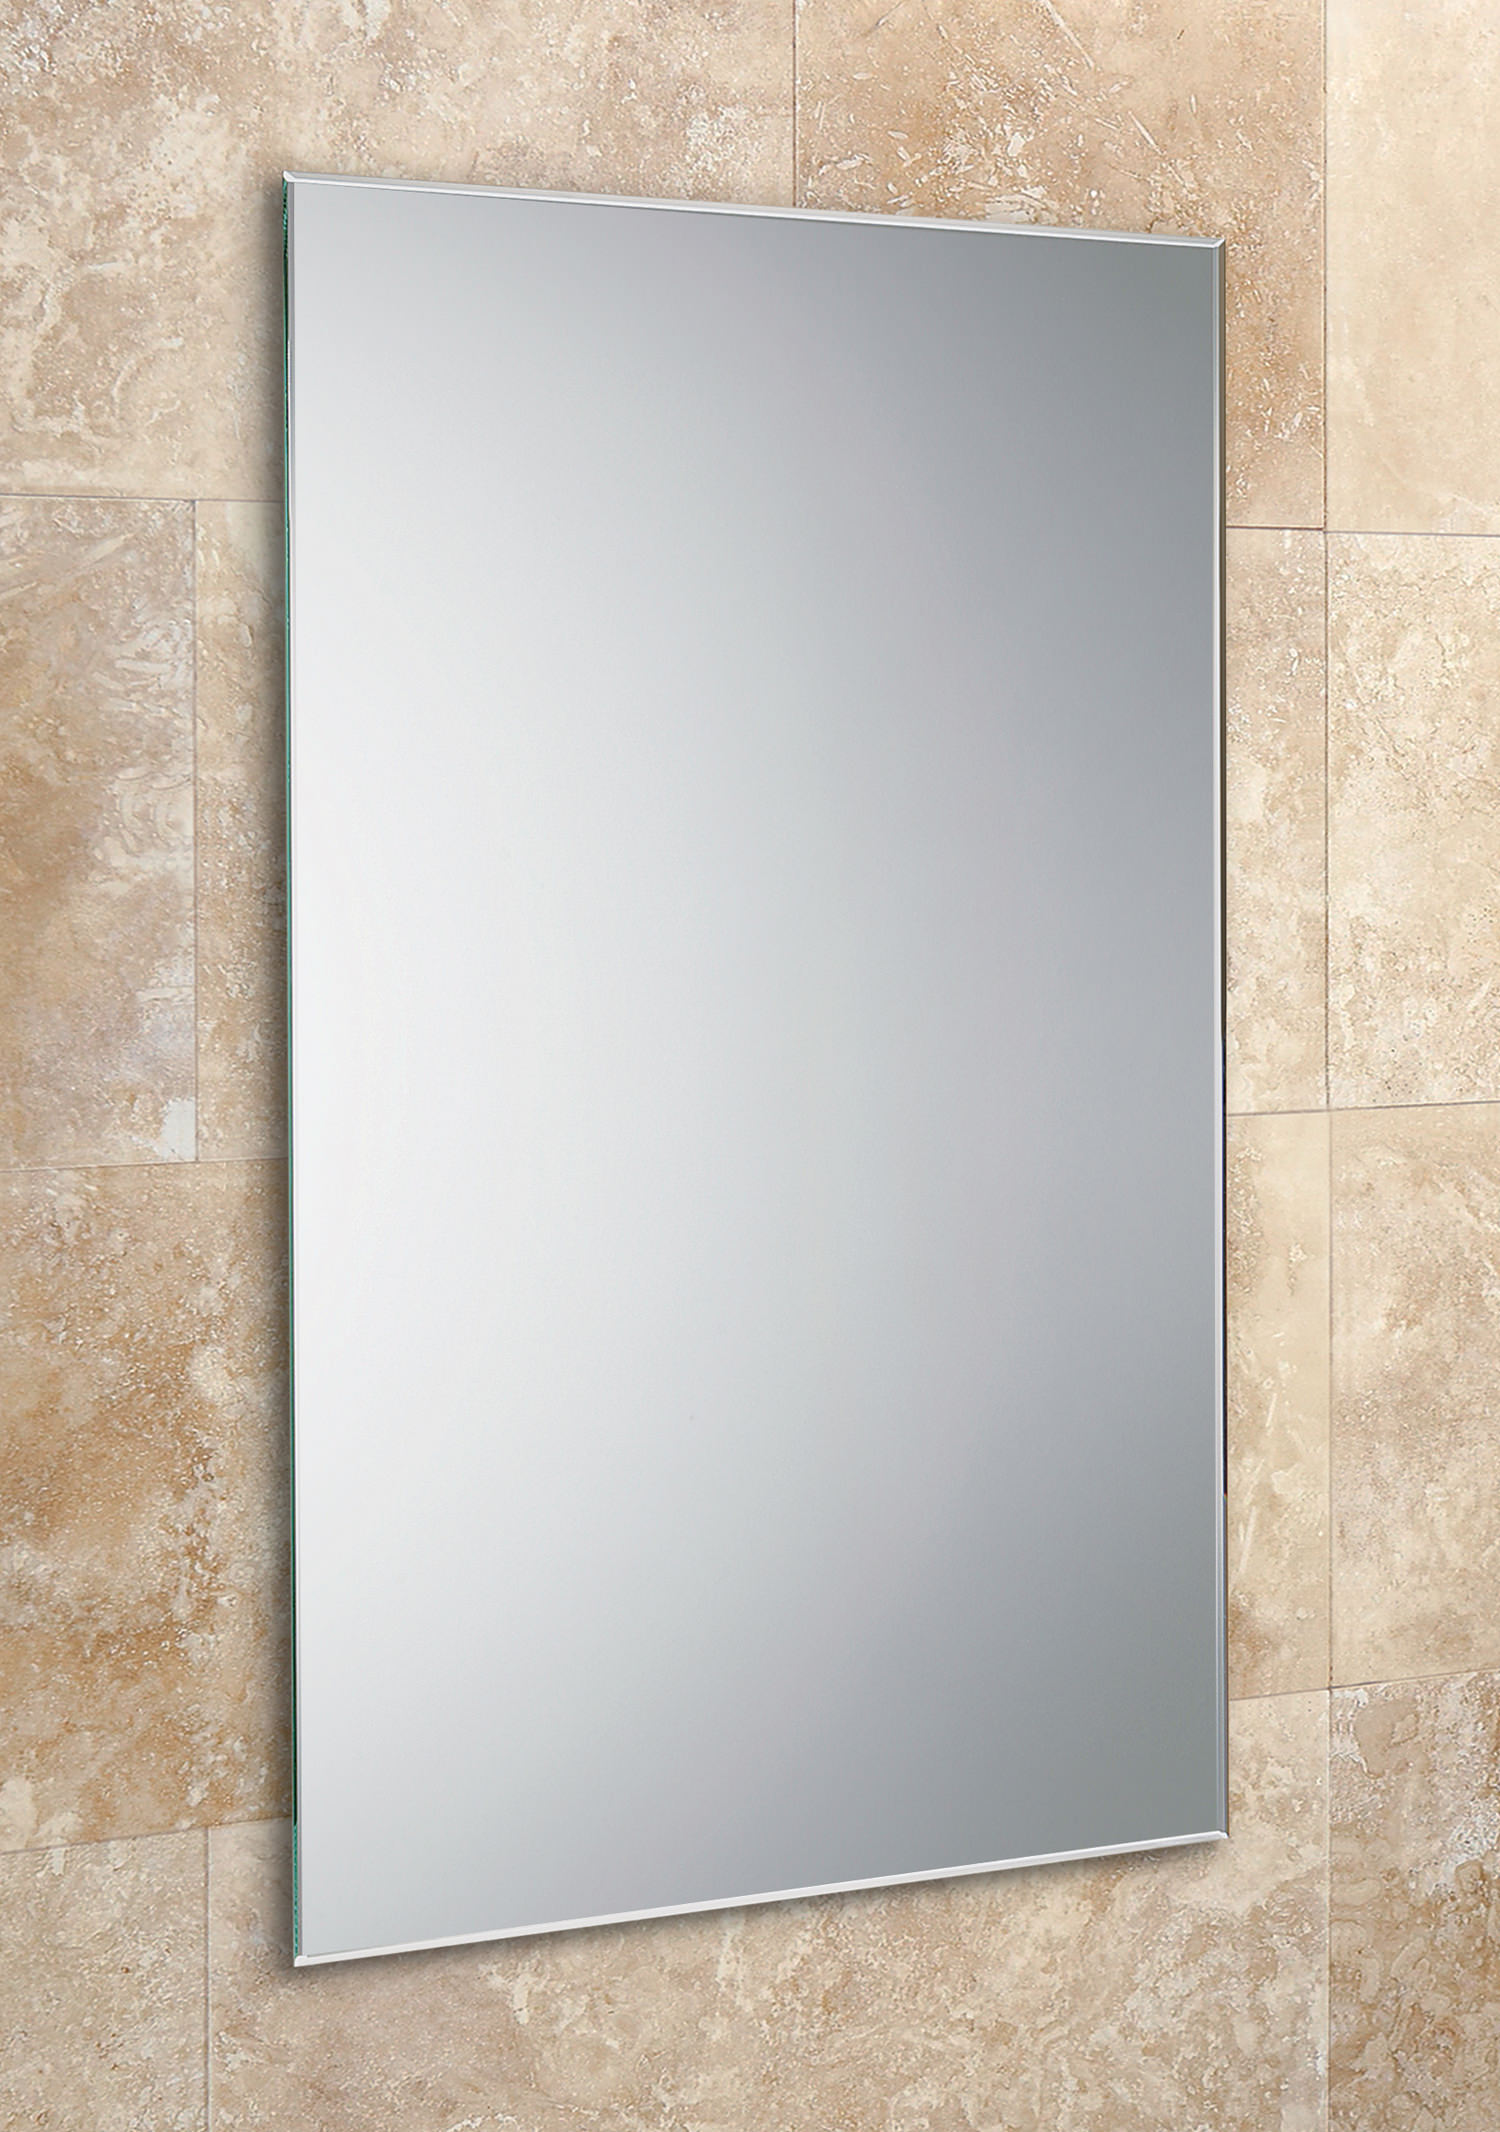 bevelled edge bathroom mirror hib johnson rectangular mirror with bevelled edges 400 x 17358